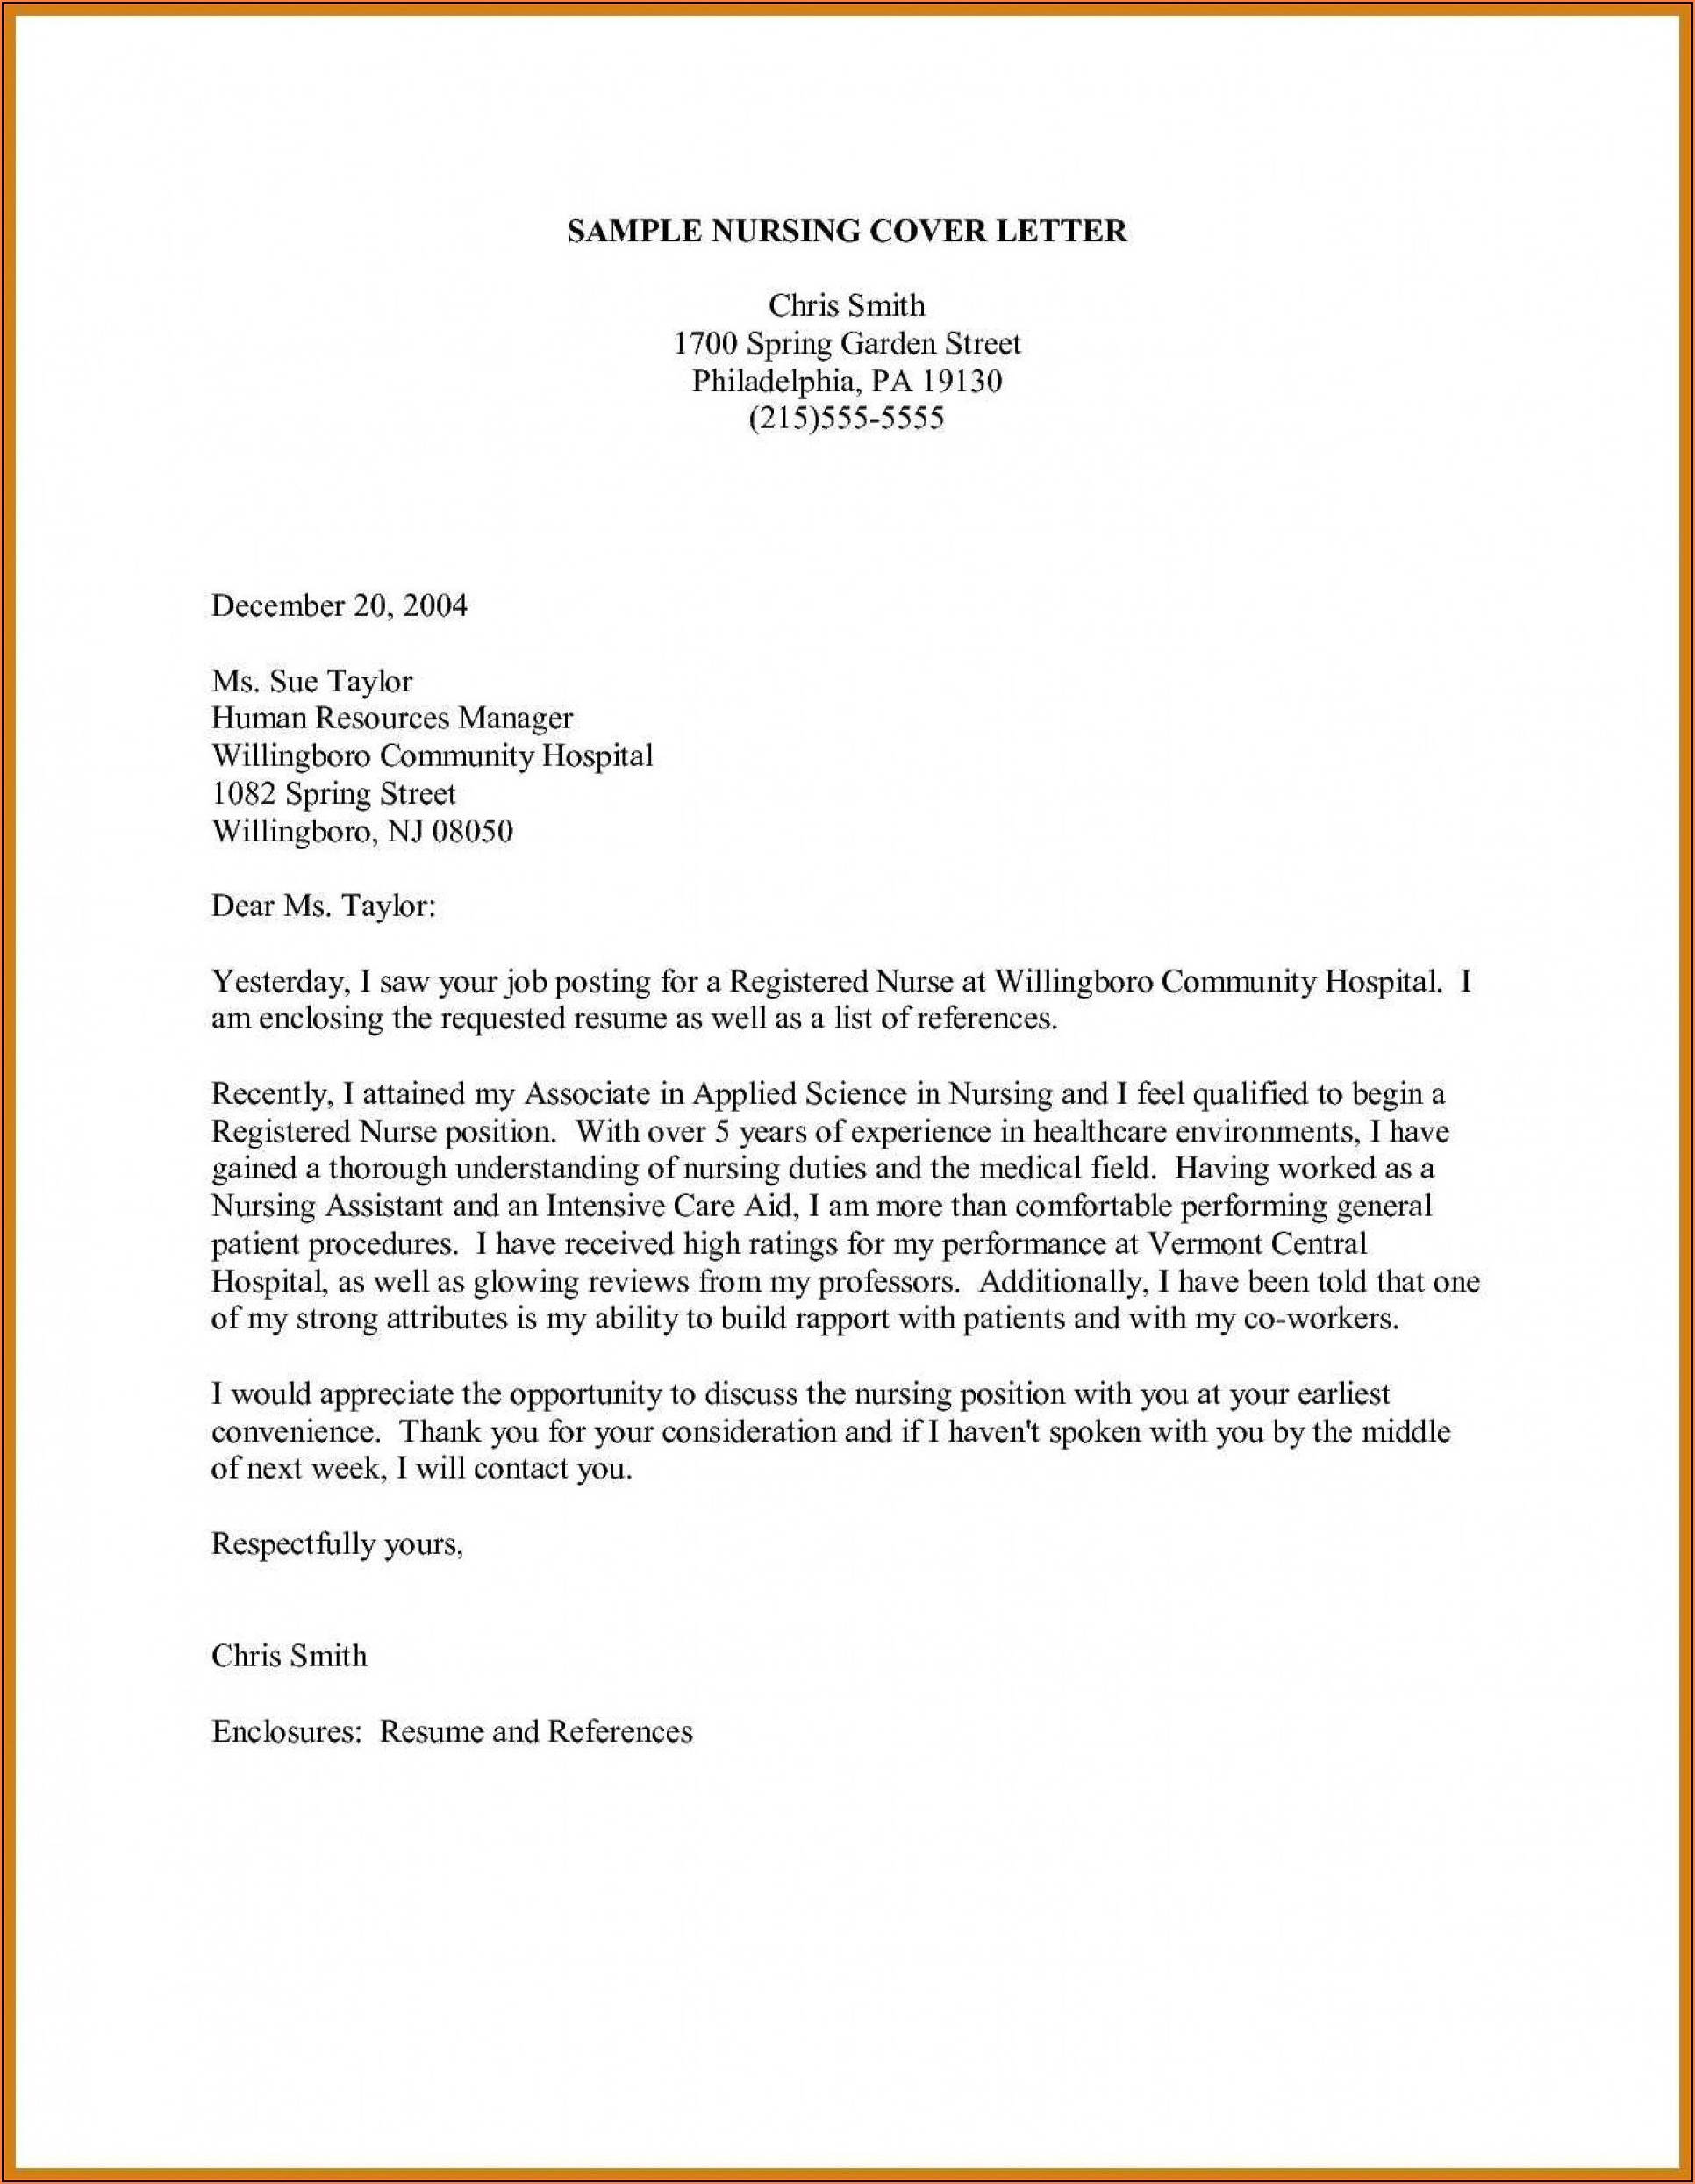 Examples Of Cover Letters For Resumes In The Medical Field